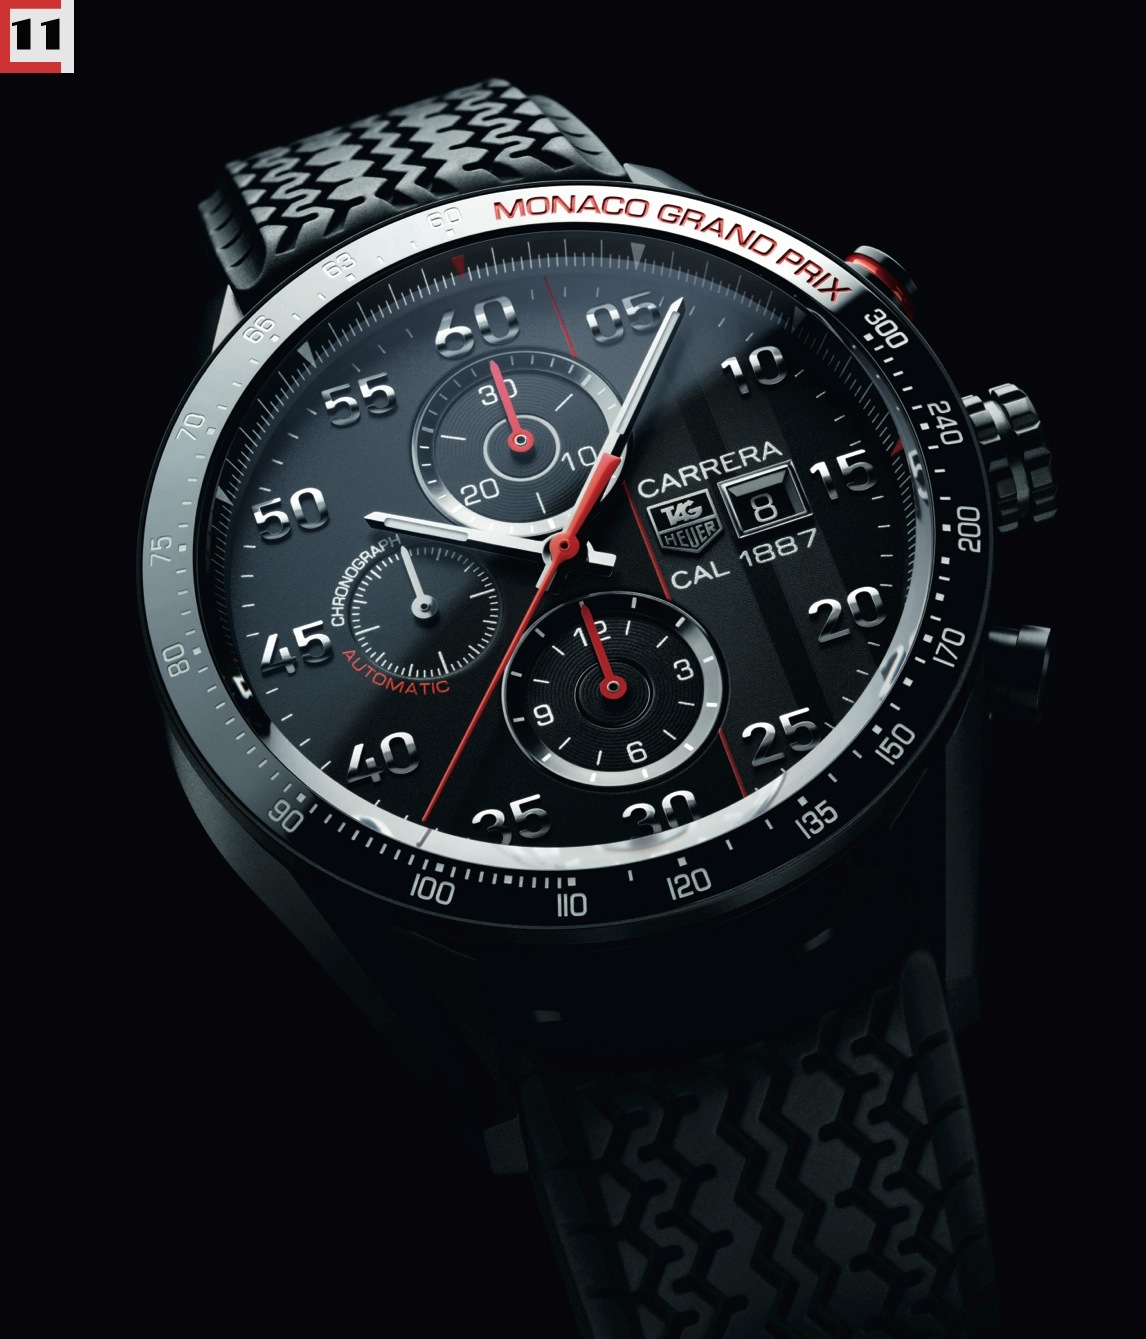 Wrists On Stylish And Sporty Tag Heuer Replica Watches At A Reasonable Price